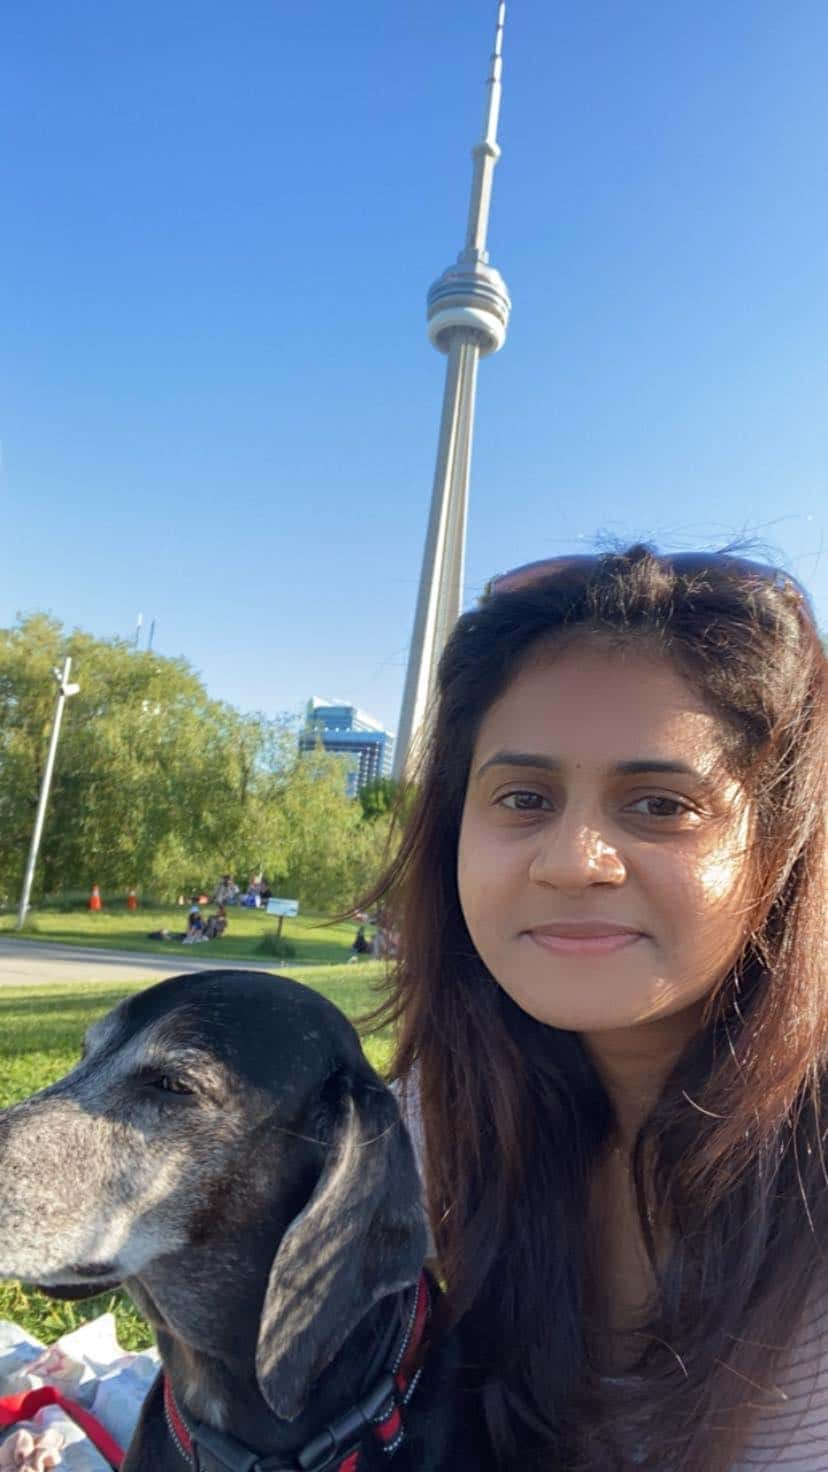 Selfie of permanent resident Marushka Loshki Nair with CN tower in the background